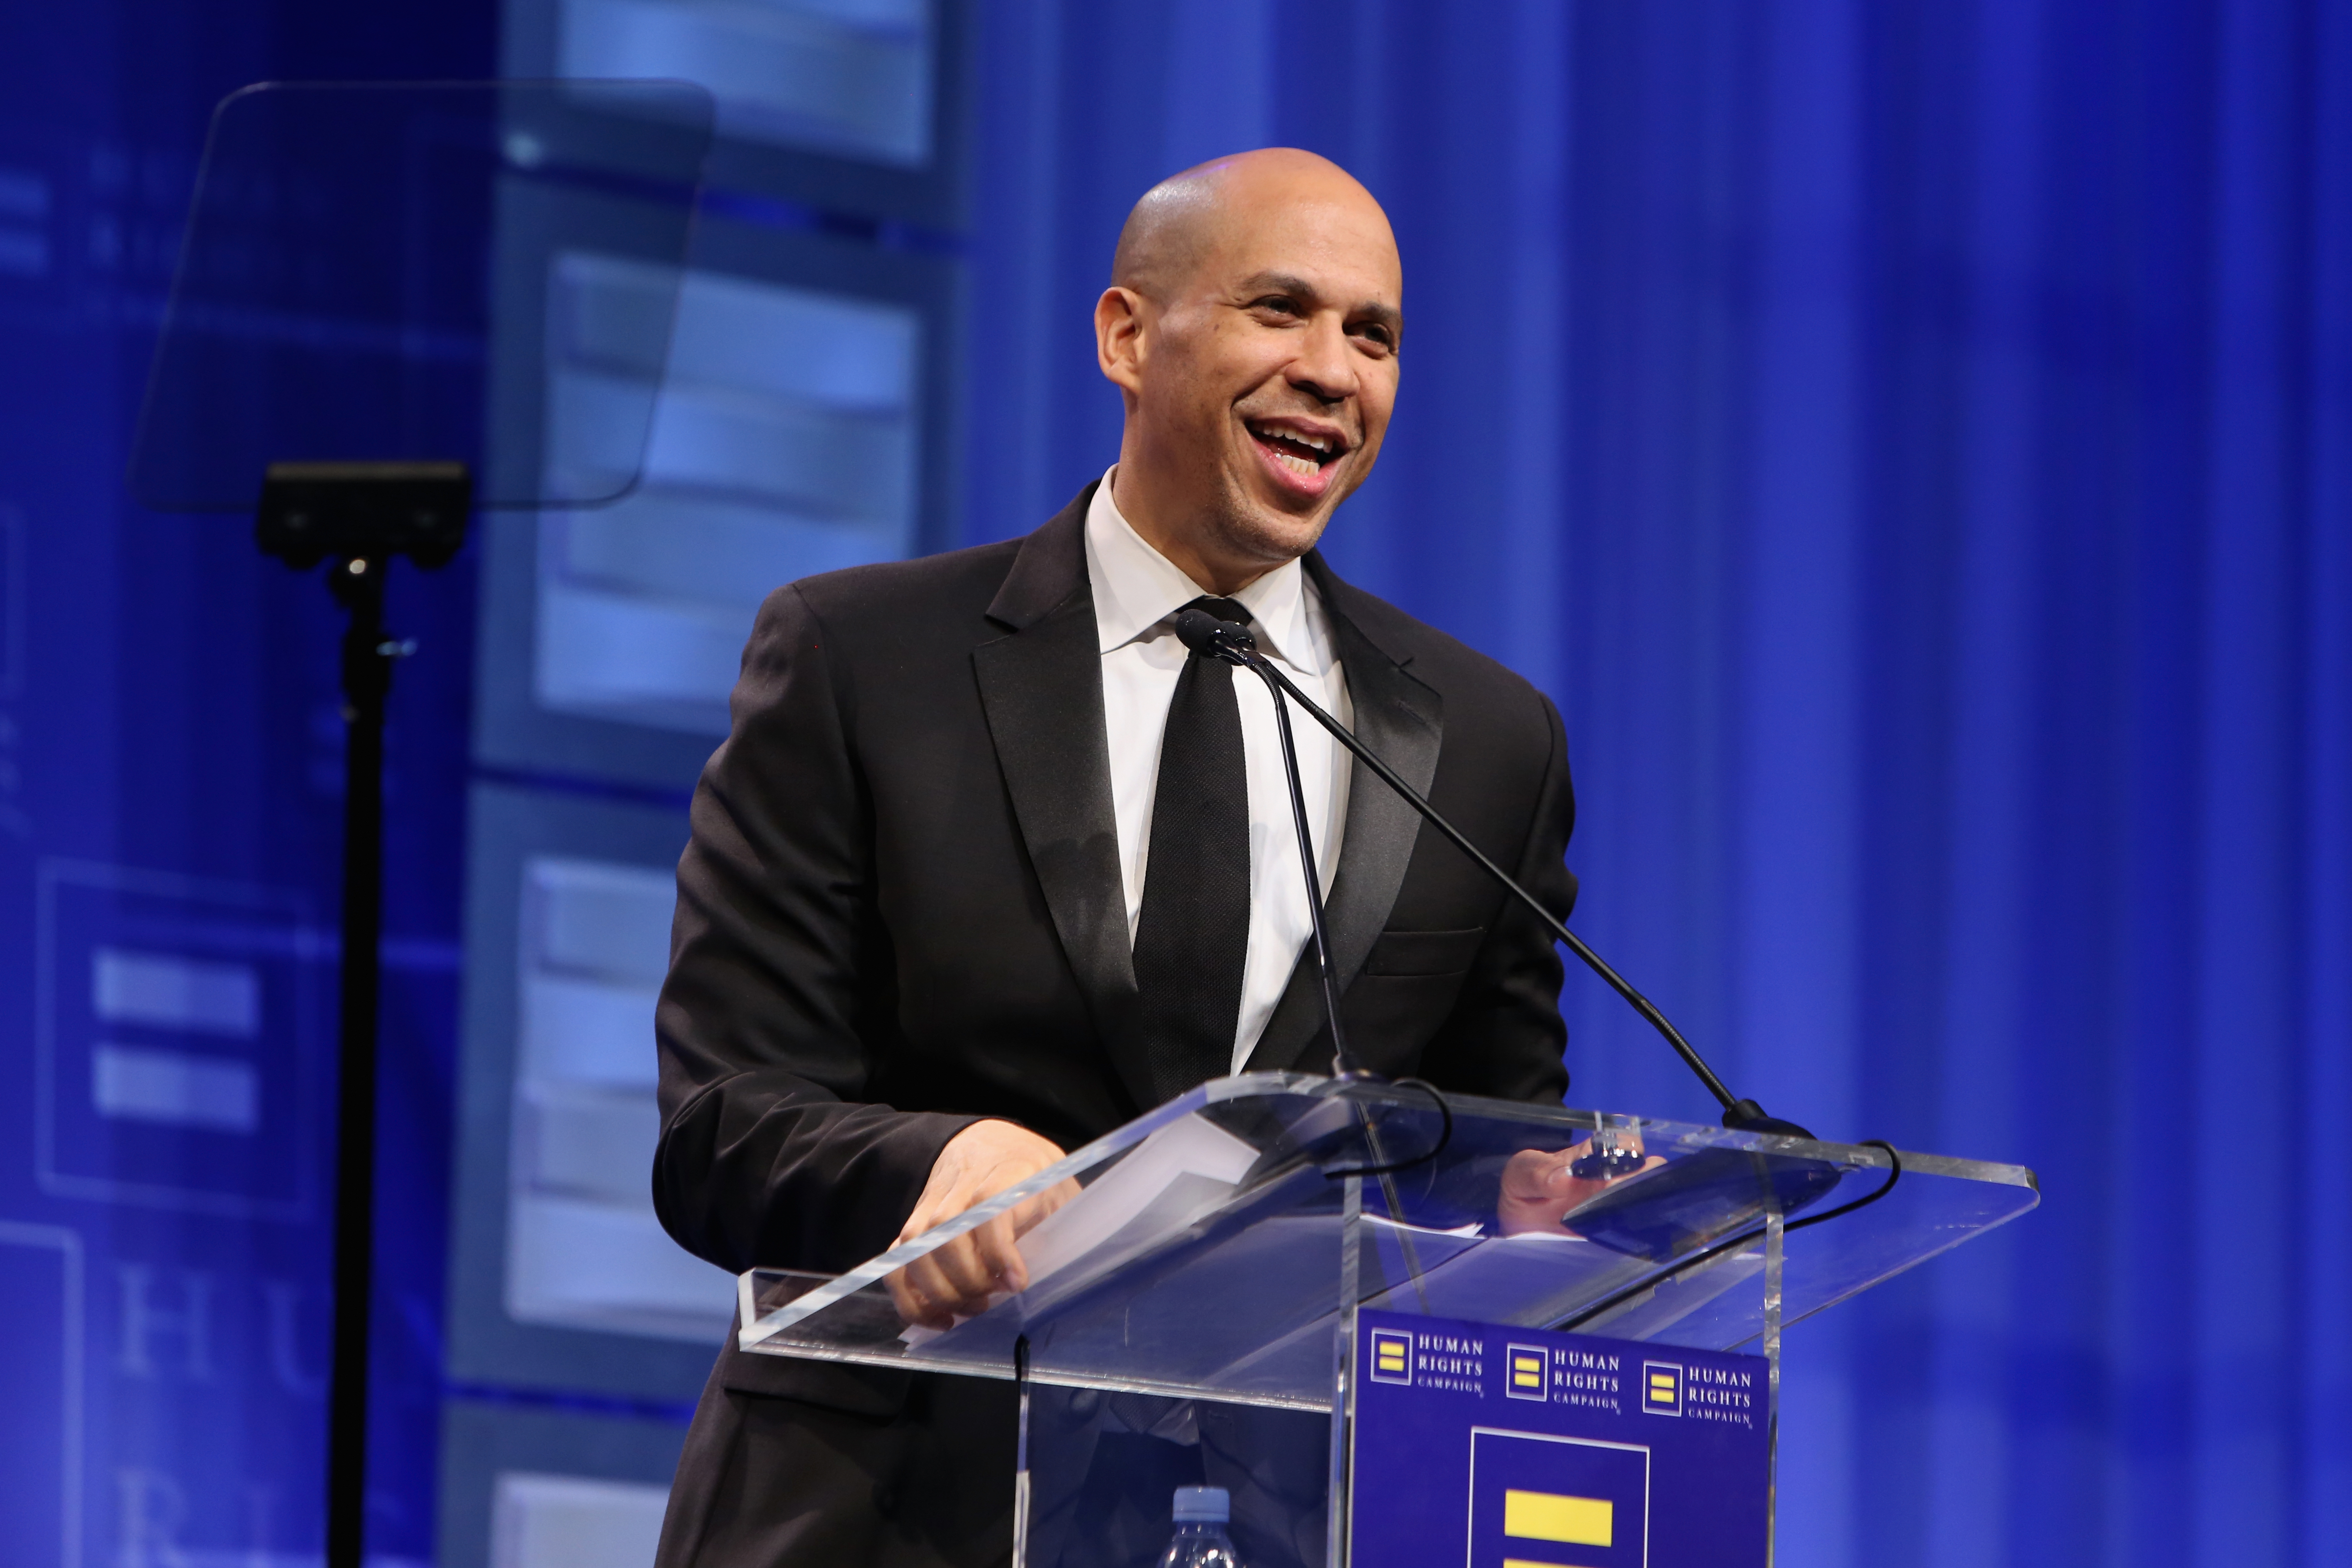 Senator Cory Booker speaks onstage during The Human Rights Campaign 2019 Los Angeles Gala Dinner at JW Marriott Los Angeles at L.A. LIVE on March 30, 2019 in Los Angeles, California.